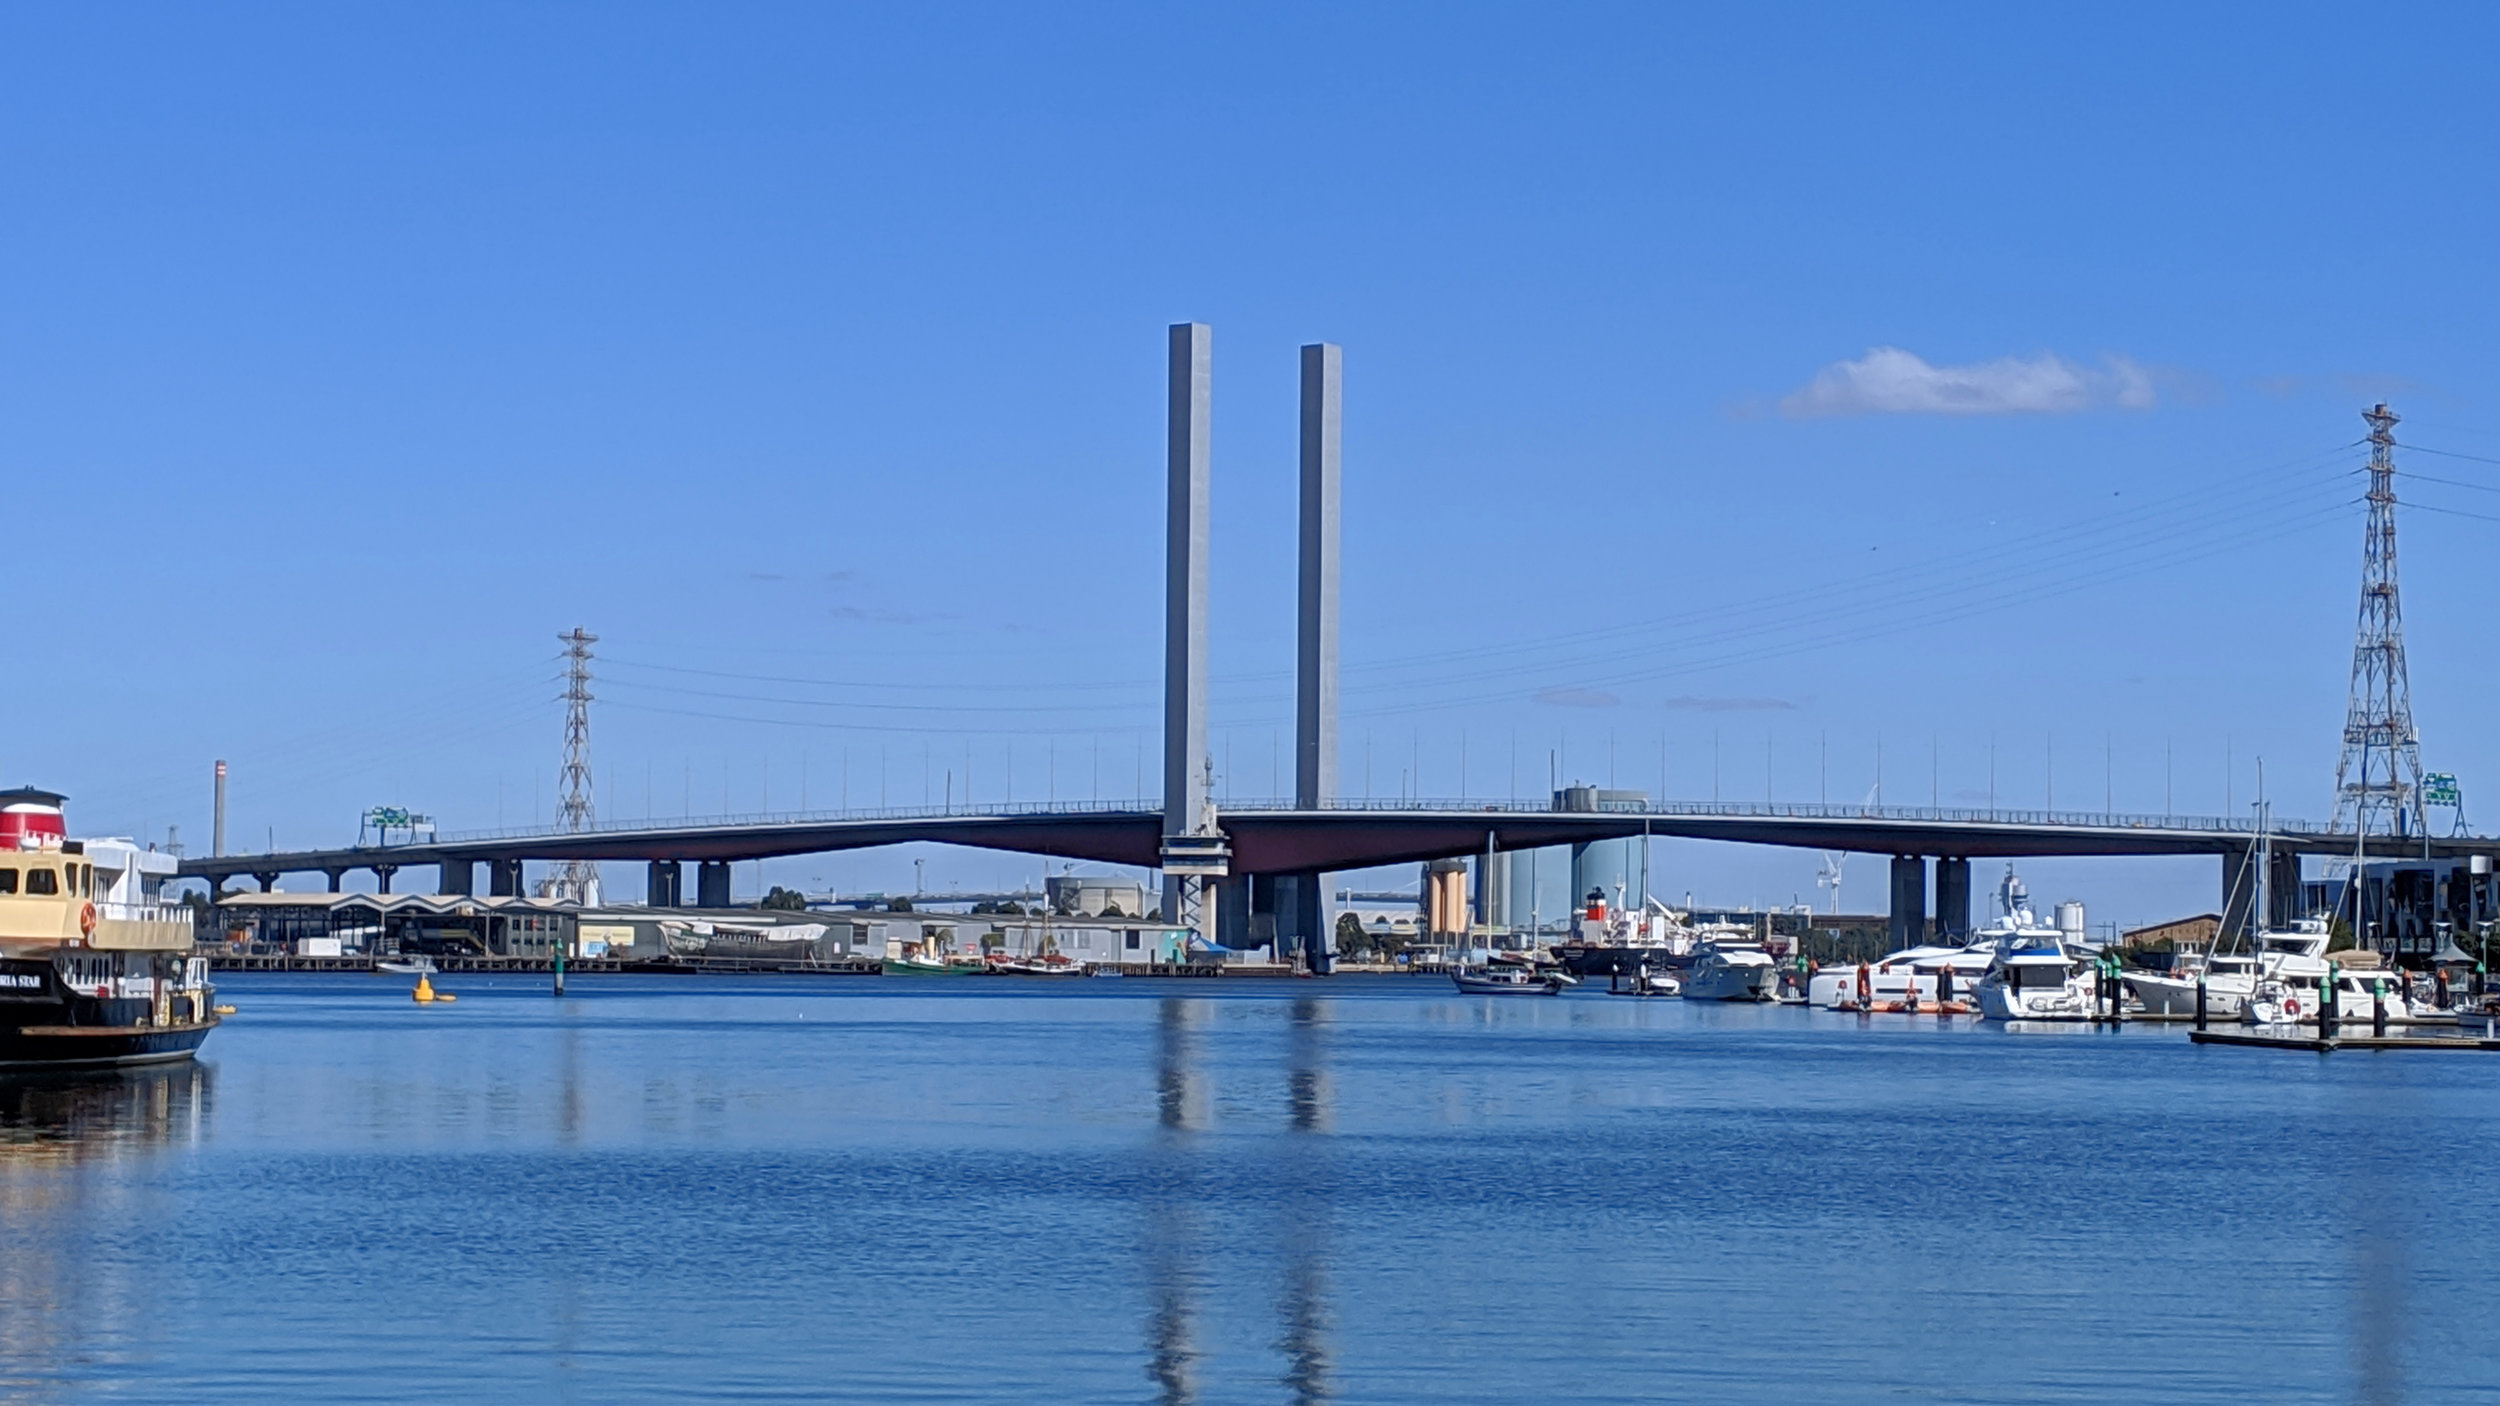 Bolte Bridge as seen from Docklands, Melbourne during Run for the Kids 2019